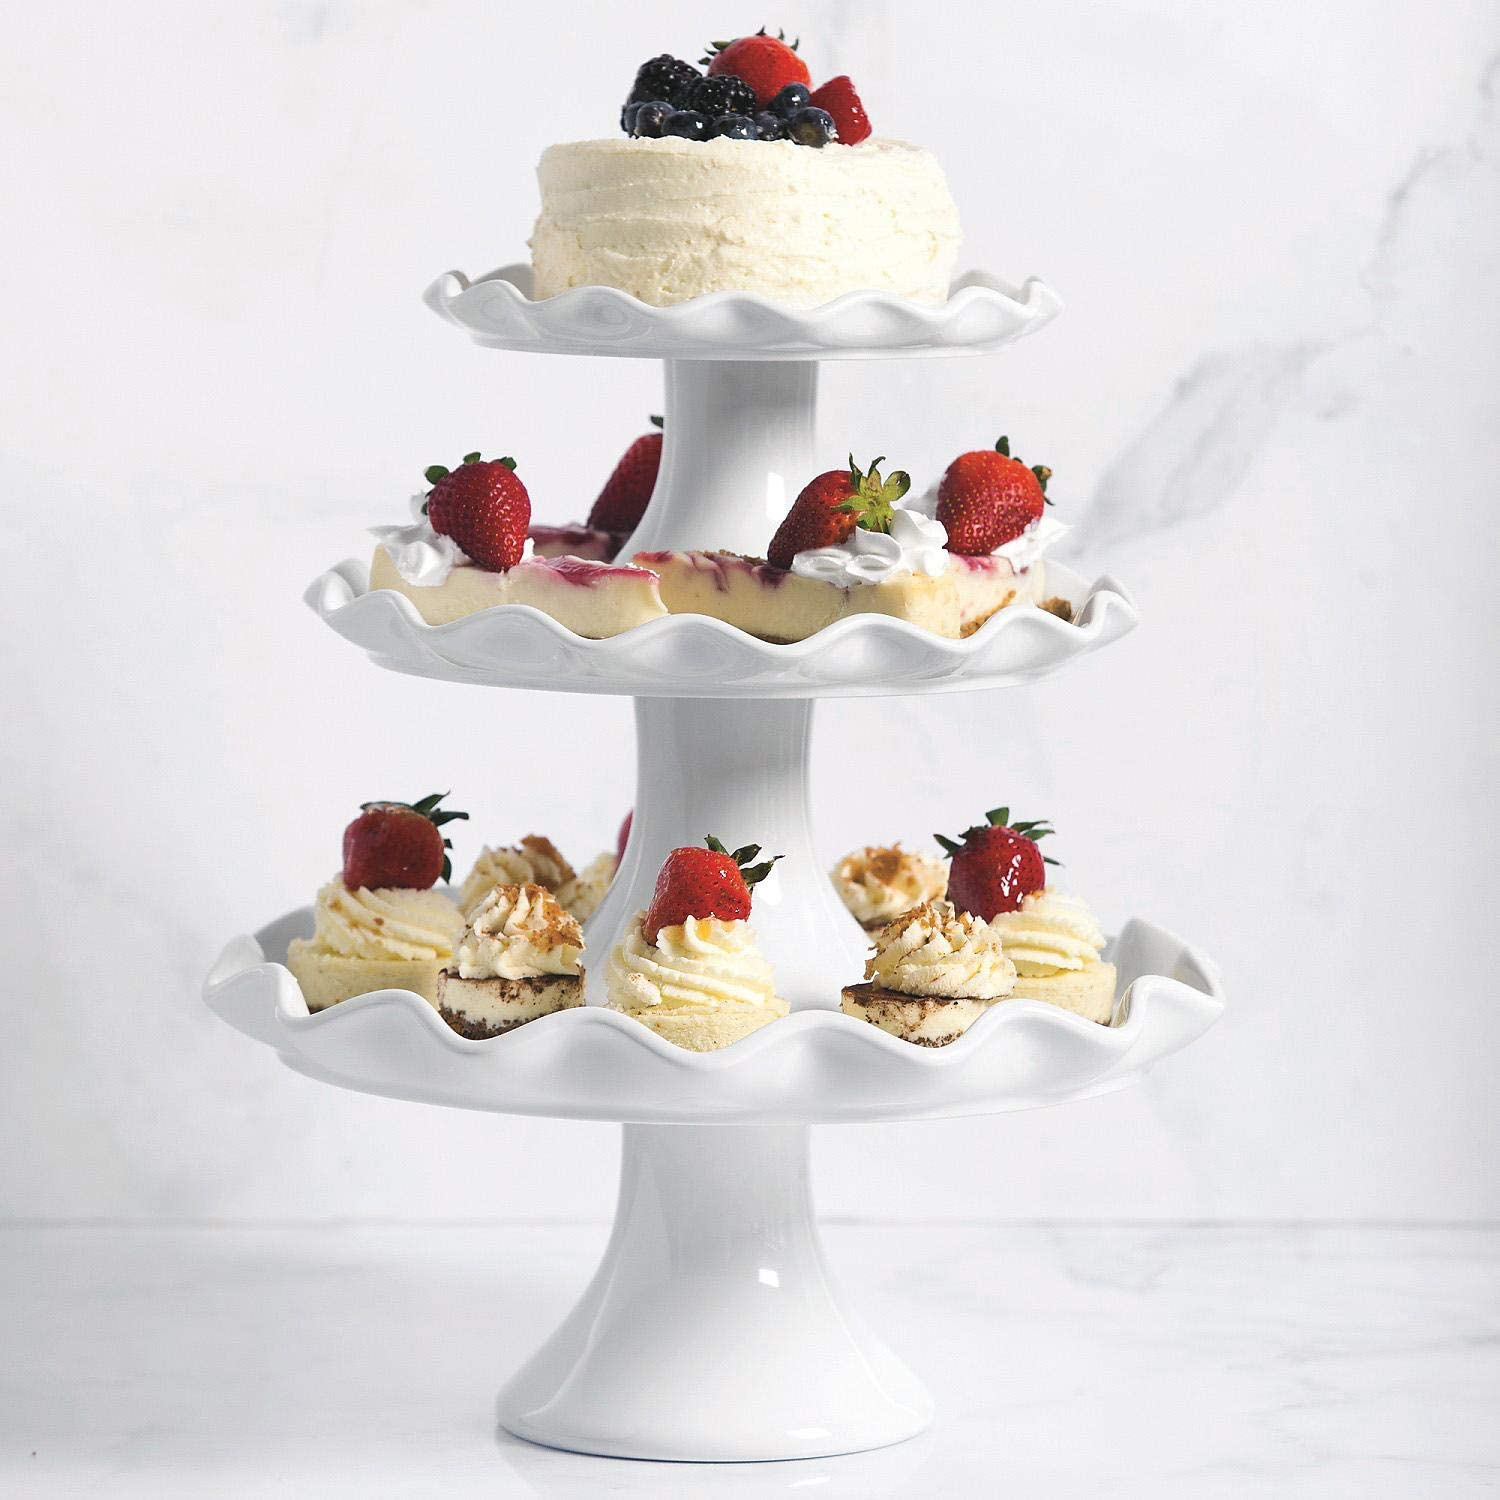 Amazon Com Elegant 3 Piece Ruffled Edge Cake Stand Set Use As Cupcake Stand Wedding Cake Stand Dessert Stand Or As A Stunning Serving Station Kitchen Dining